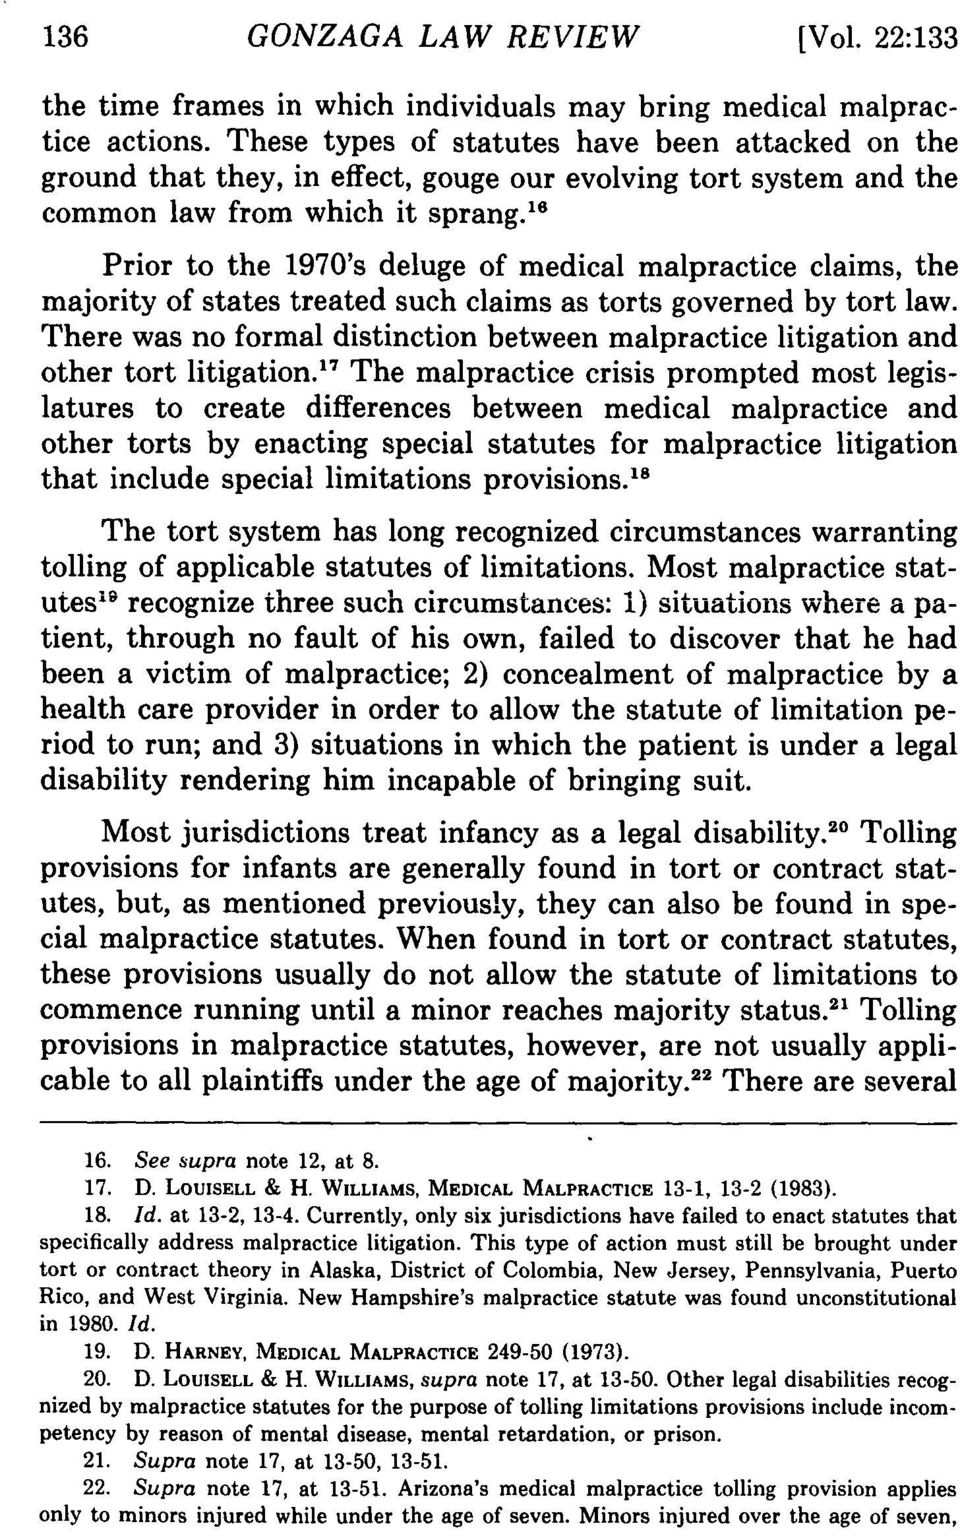 1 Prior to the 1970's deluge of medical malpractice claims, the majority of states treated such claims as torts governed by tort law.